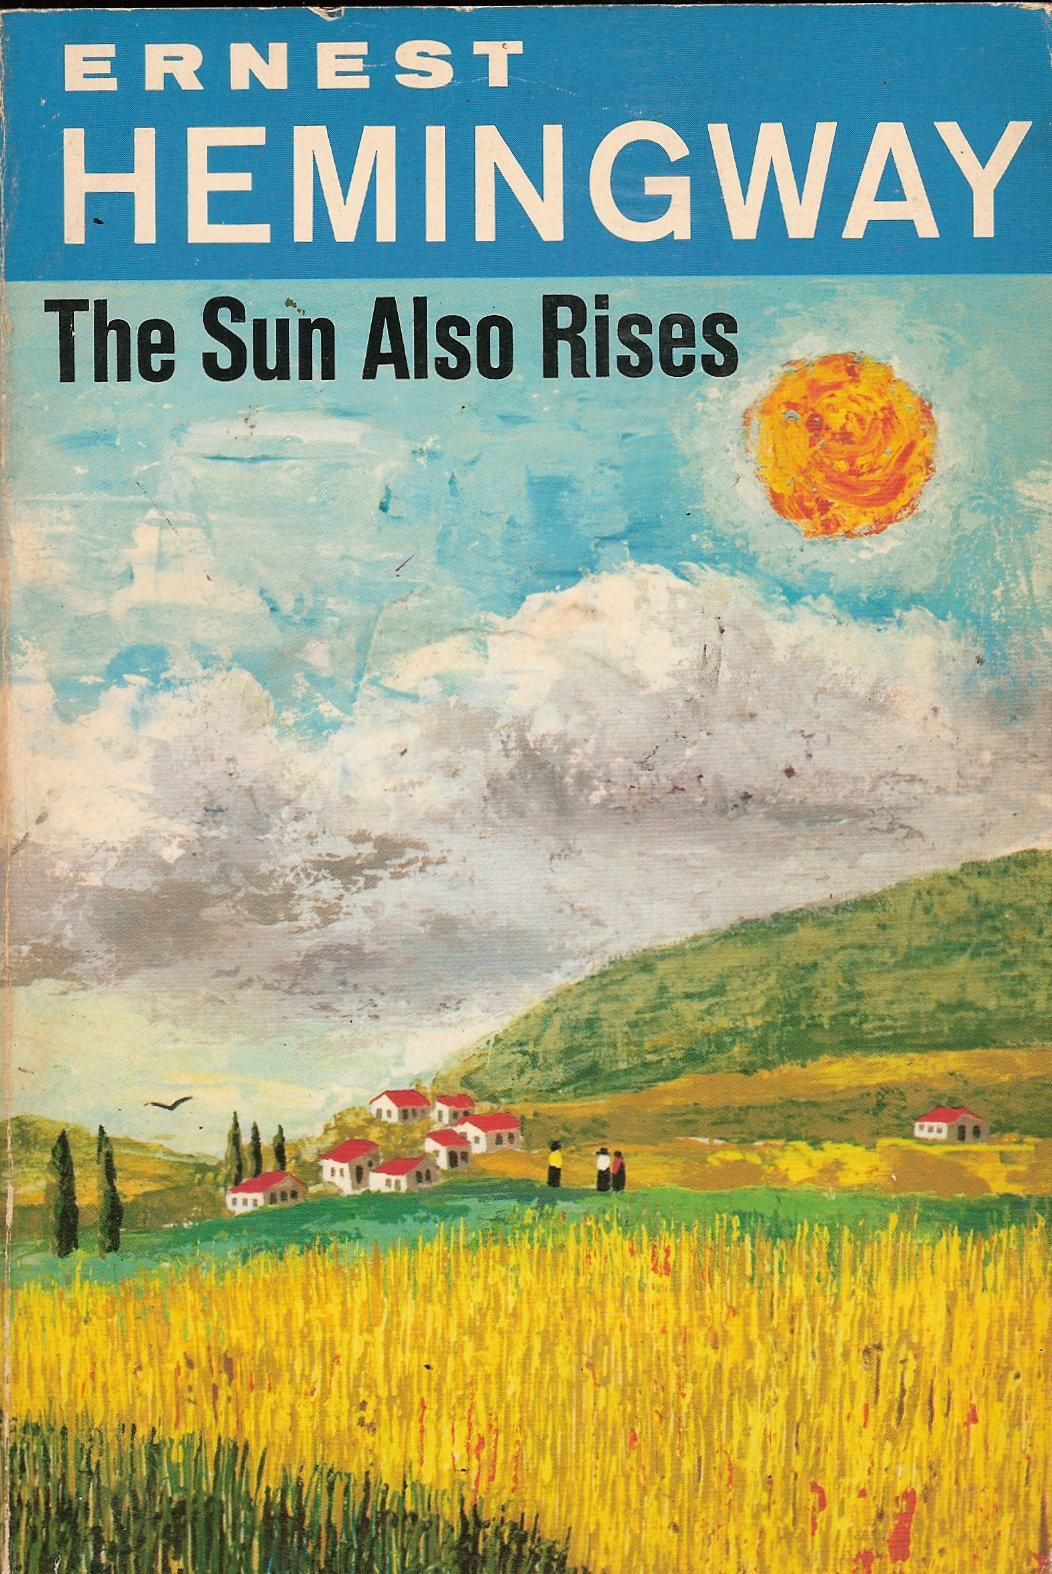 the sun also rises 5 essay Chapter 5 to 10 - let studymodecom get you up to speed on key information and facts on the sun also rises by ernest hemingway the sun also rises - chapter 5 to 10 studymode - premium and free essays, term papers & book notes.